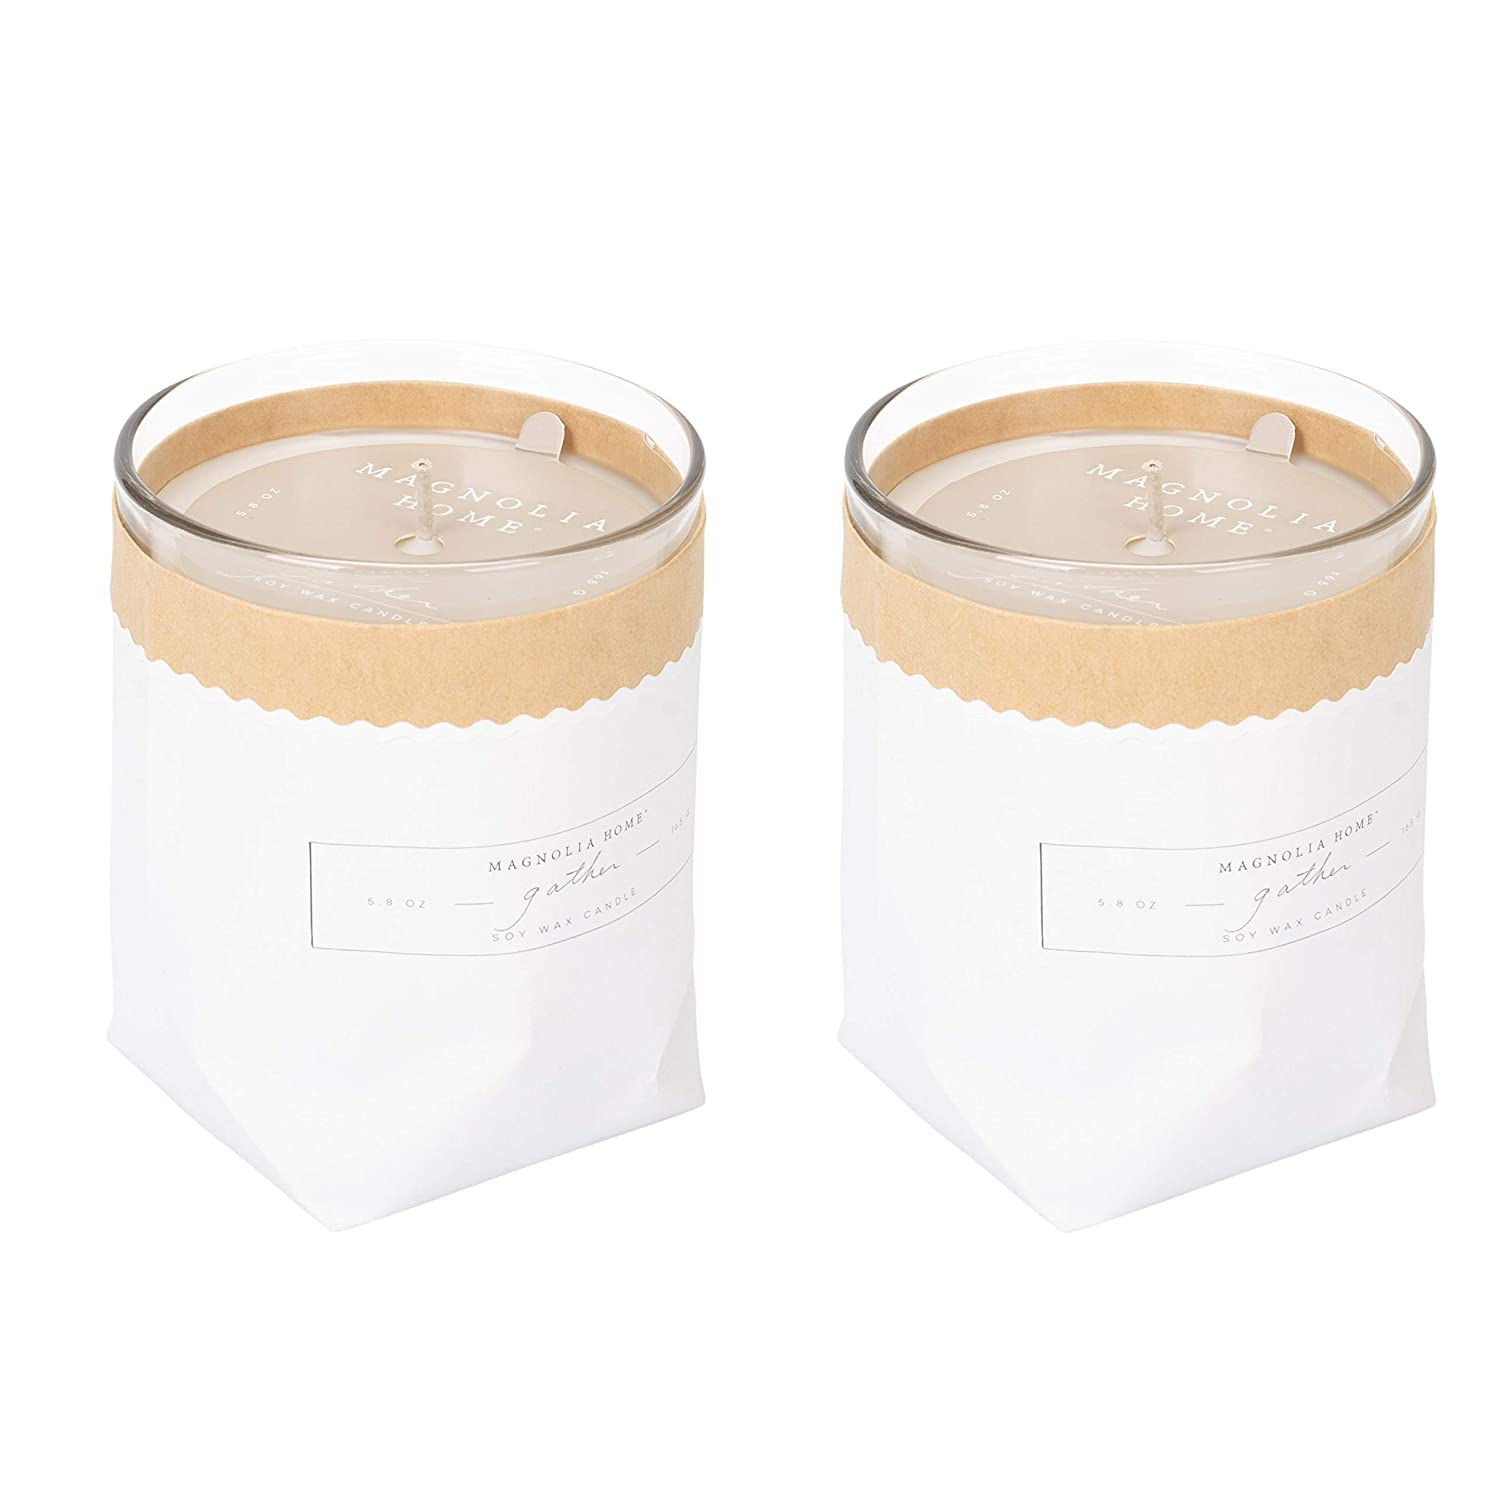 Magnolia Home Gather Scented 5.8 oz Soy Wax Kraft-Textured Candle by Joanna Gaines - Illume Pack of 2